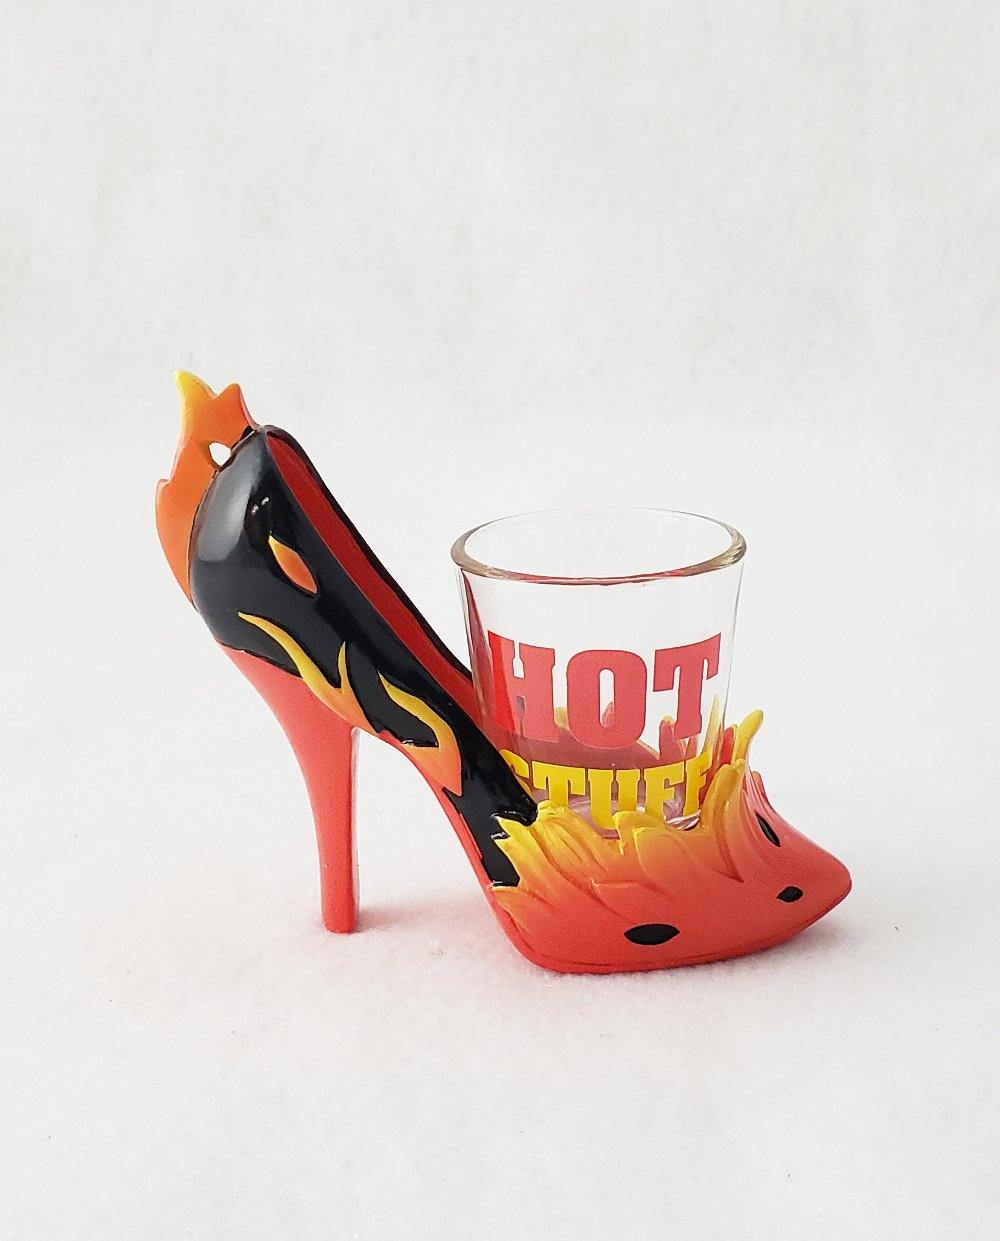 Hot Stuff Shoeter - for Women who love shots!